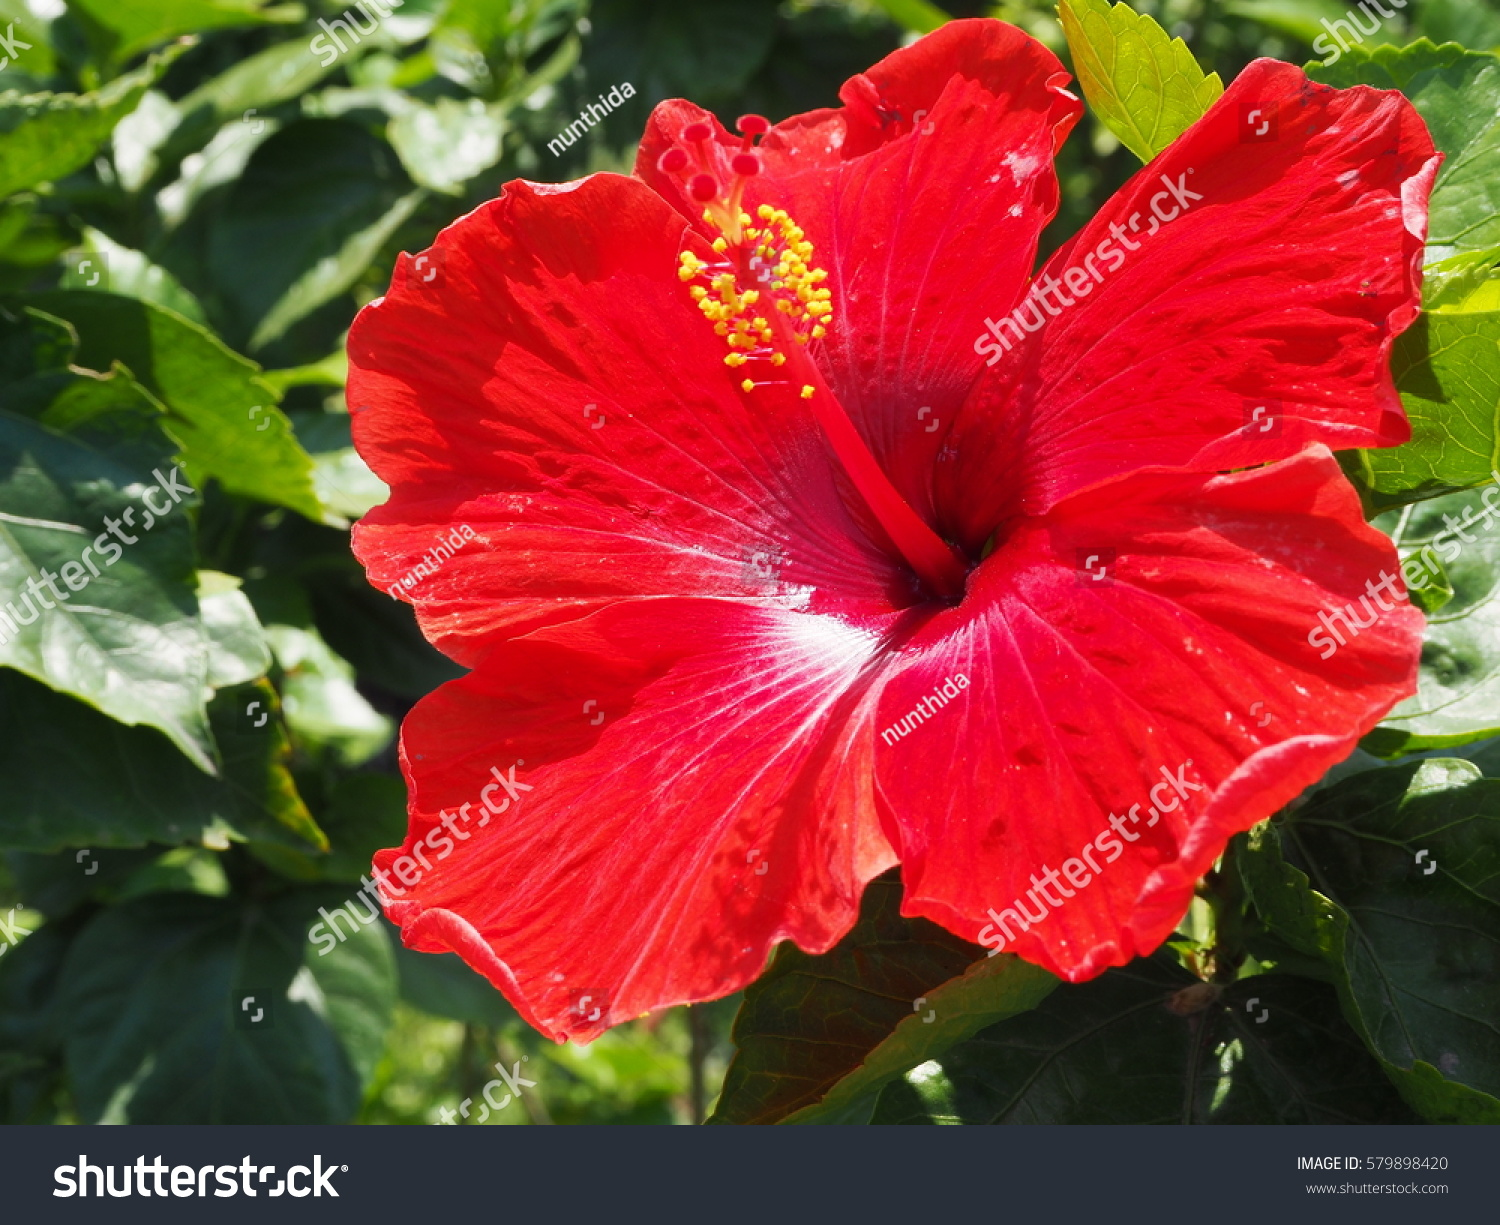 Tropical Red Hibiscus Flower On The Gardencloseup Of Chinese